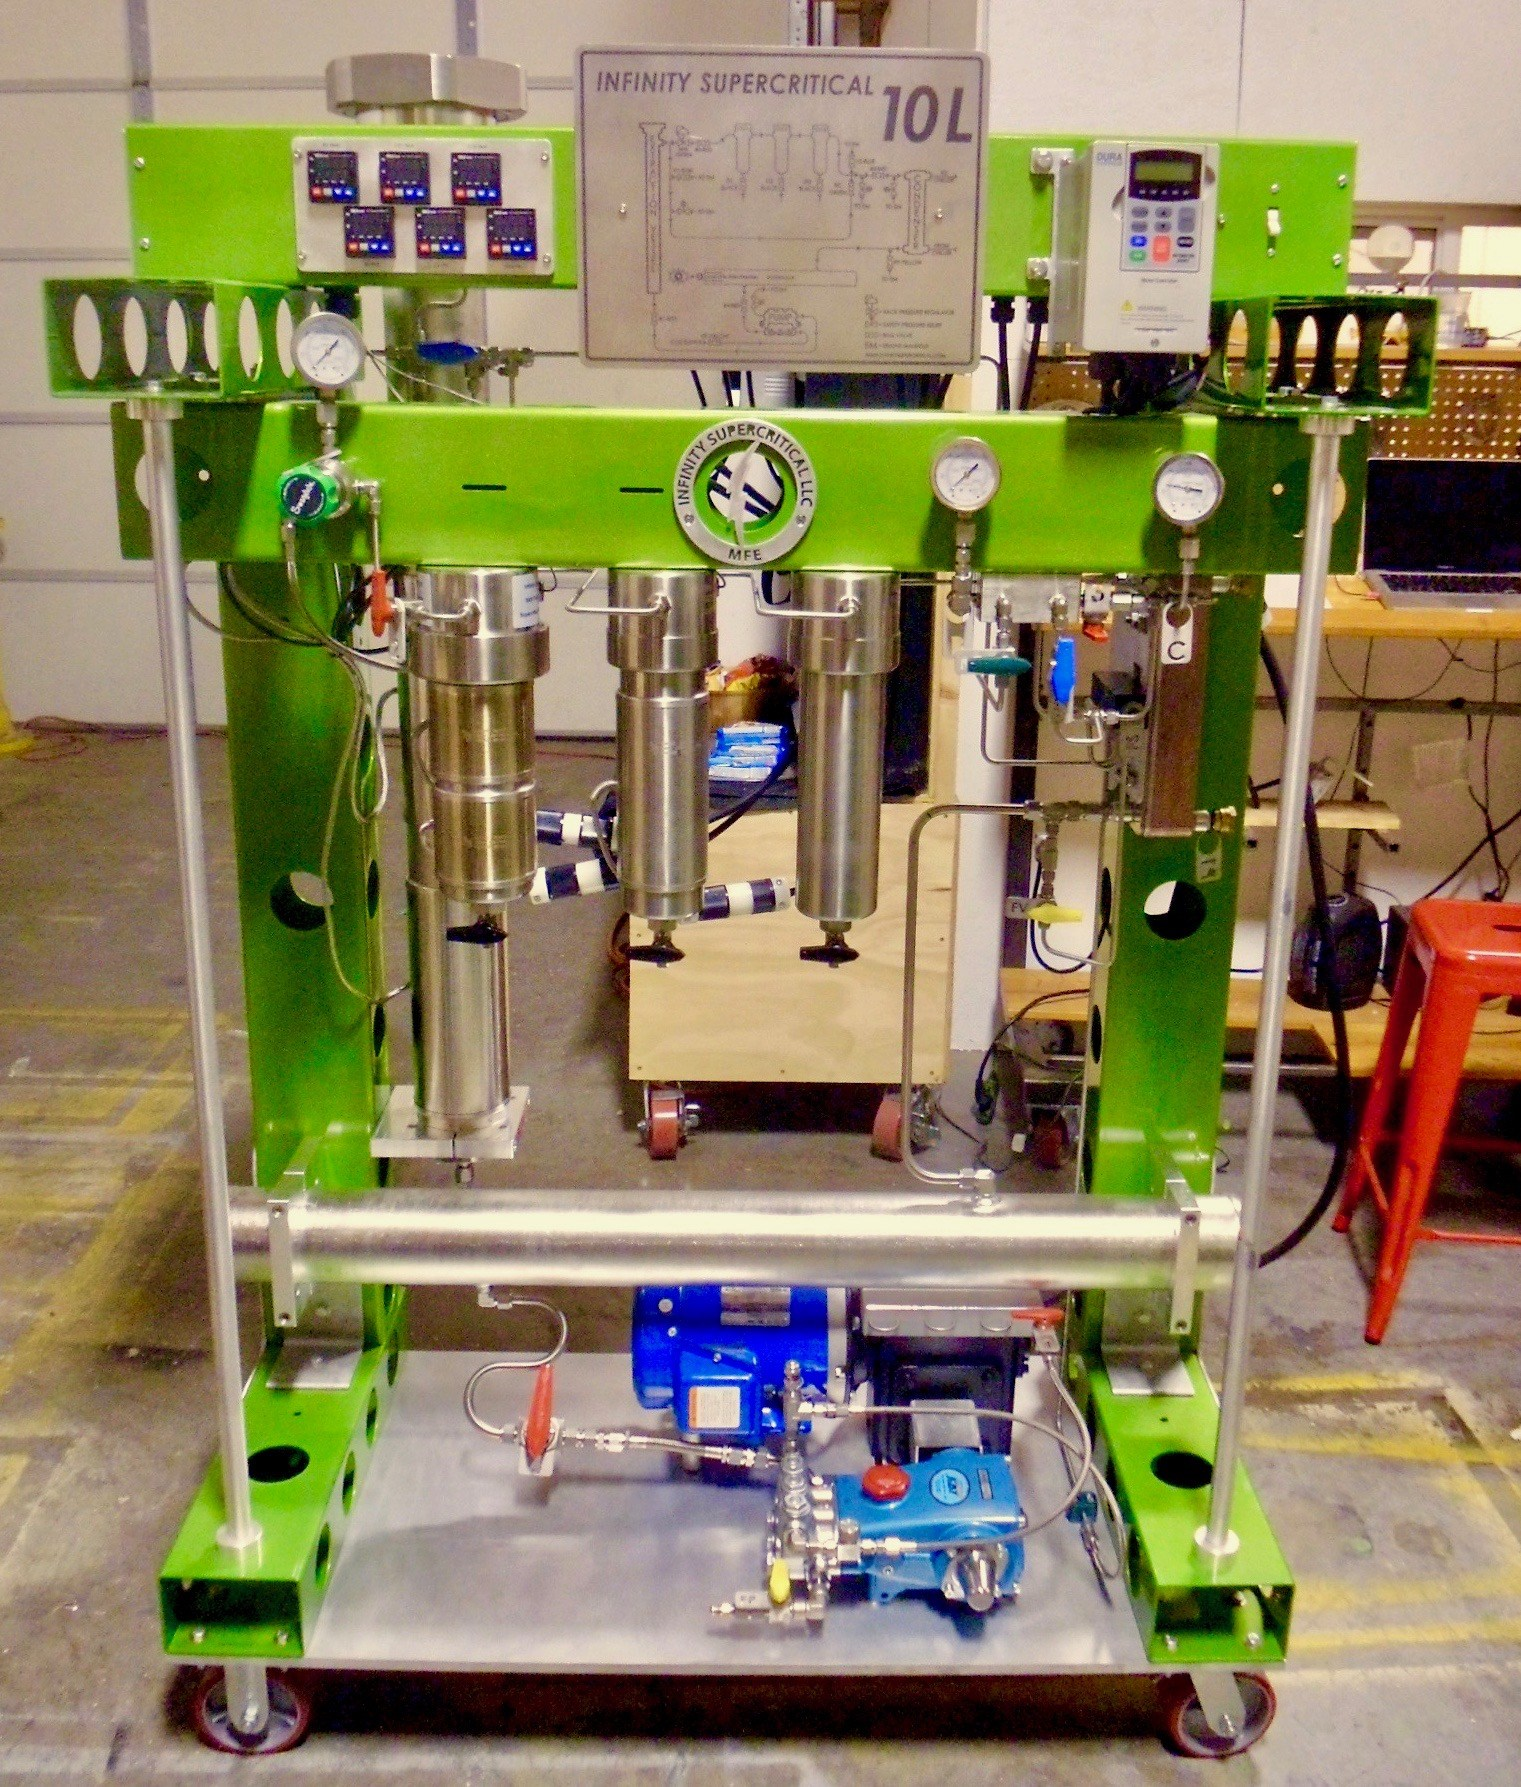 Supercritical CO2 extraction can be used to produce a full spectrum oil that can be bottled right from the machine.